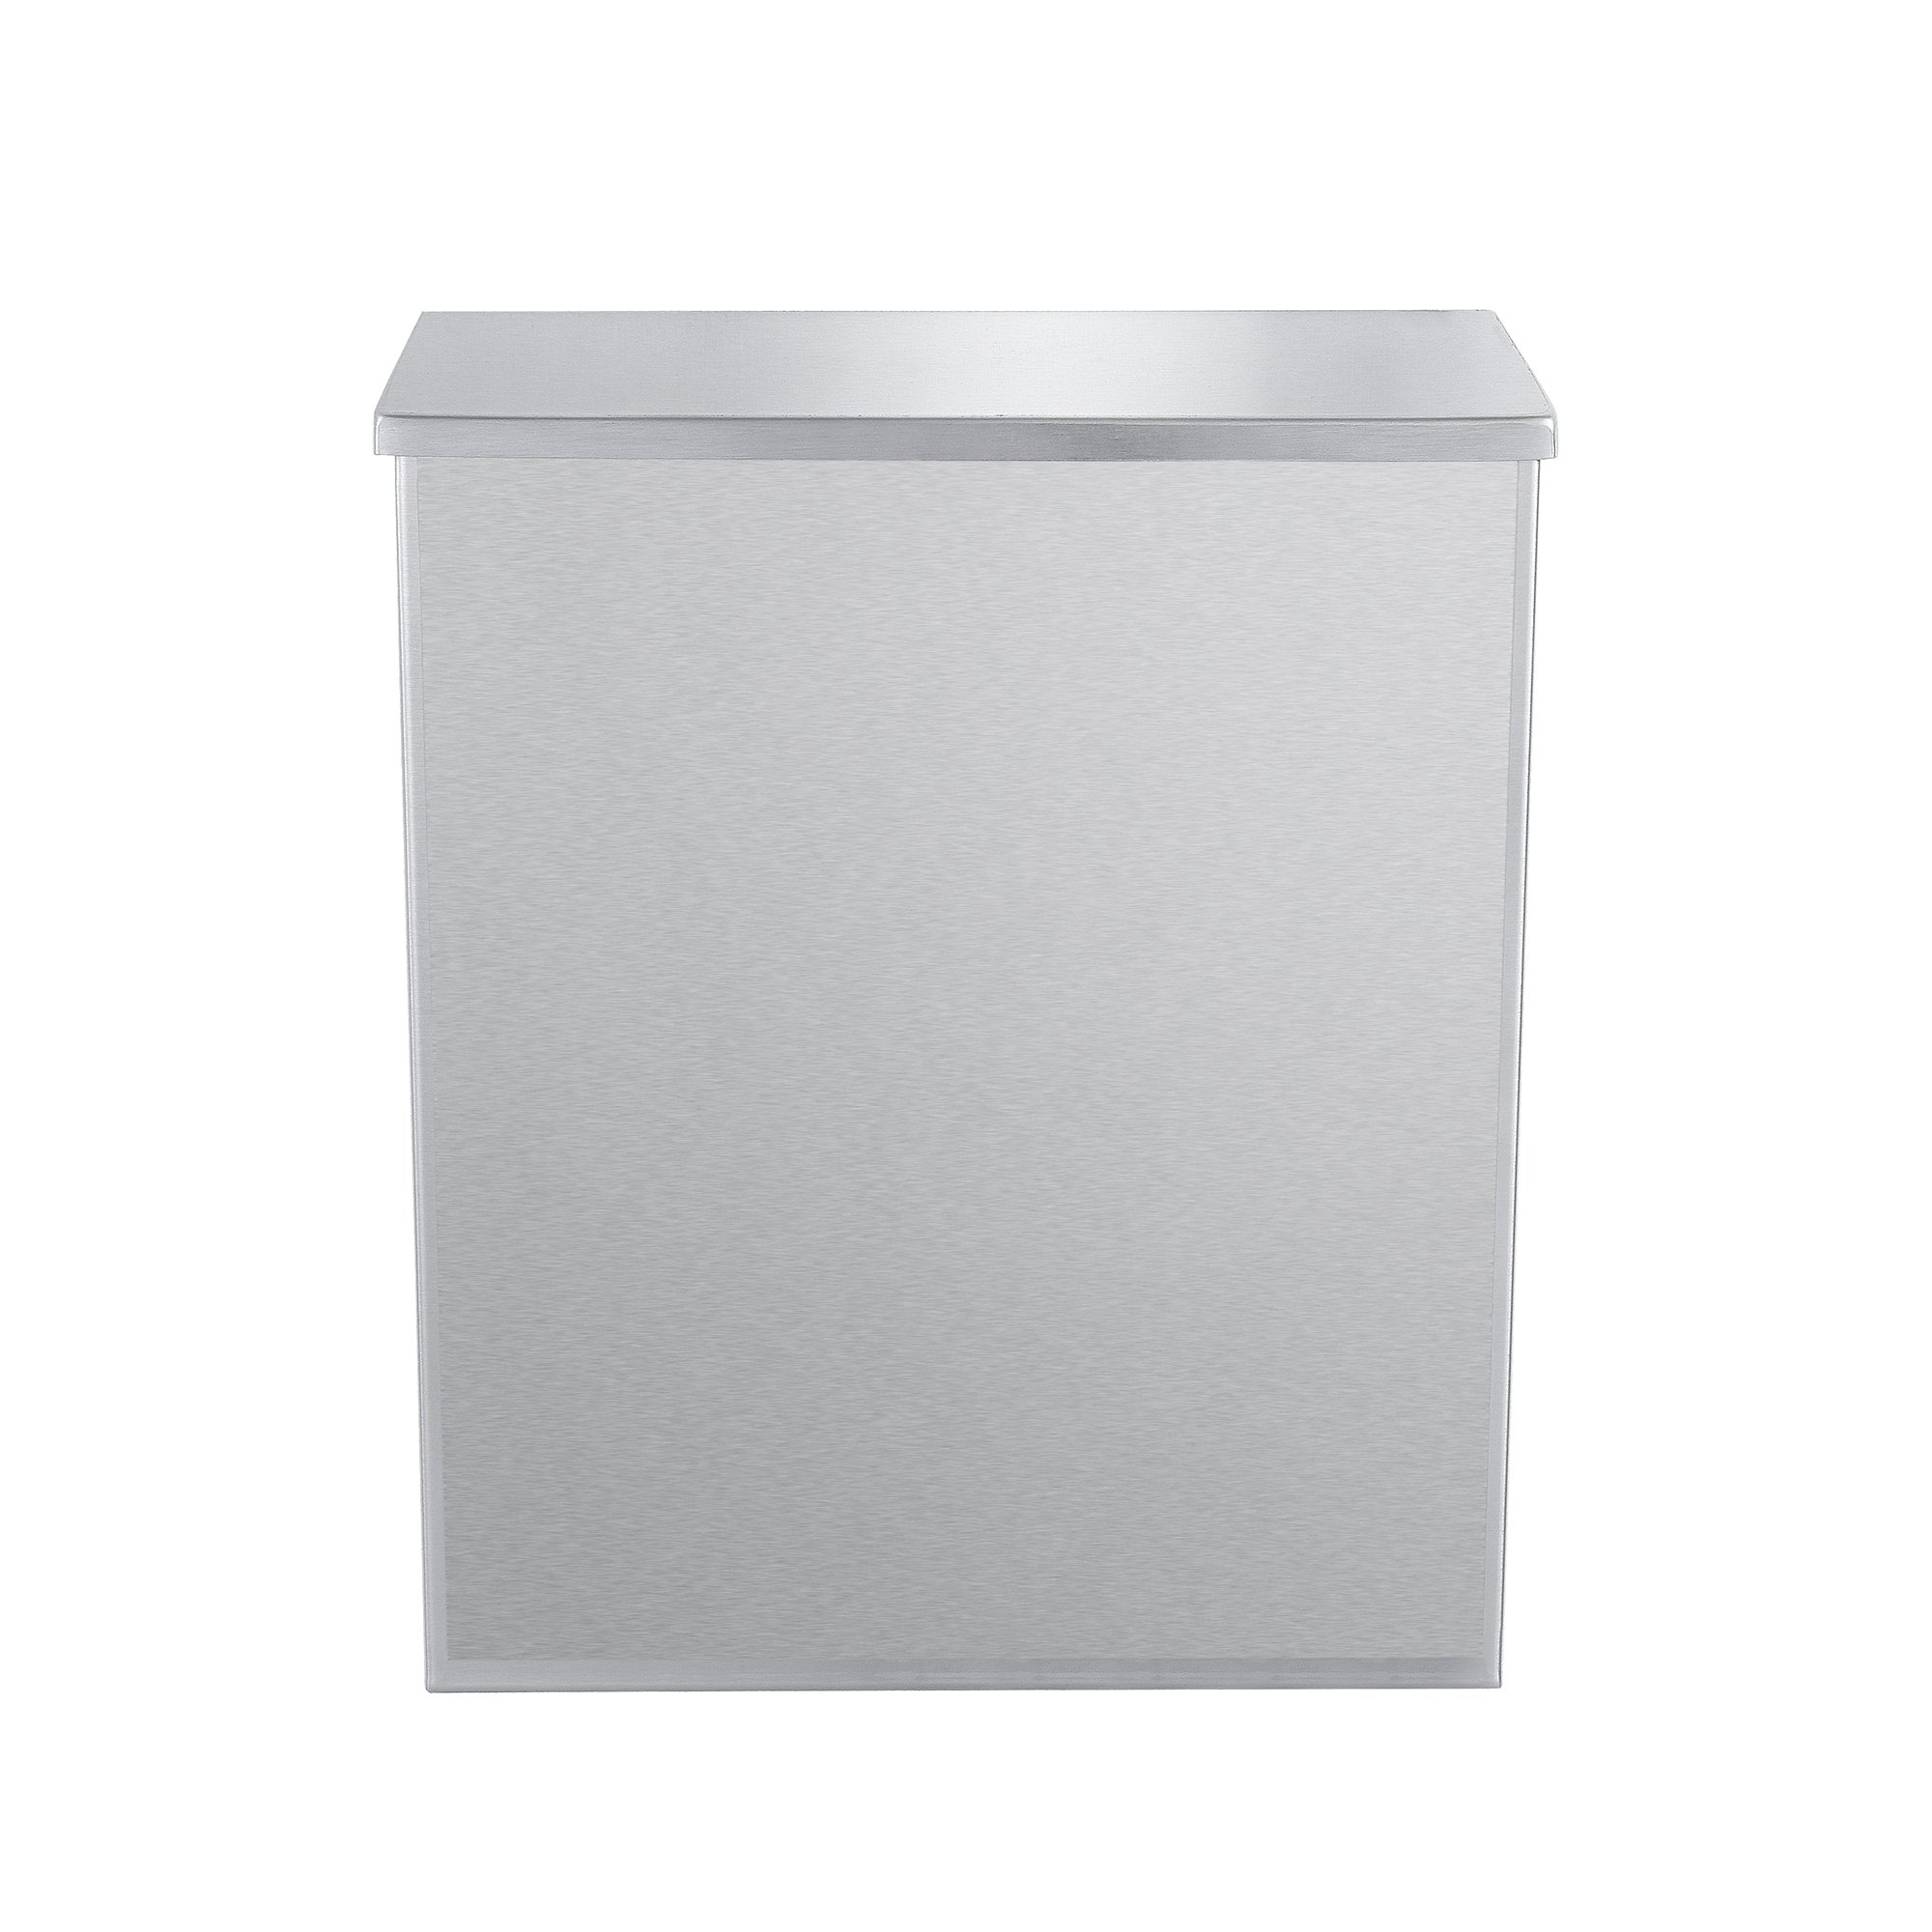 (1 Pack) Sanitary Napkin Disposal with Key and Lock - 304 Grade Heavy Duty Stainless Steel - 1.8 Gallon Capacity by Dependable Direct